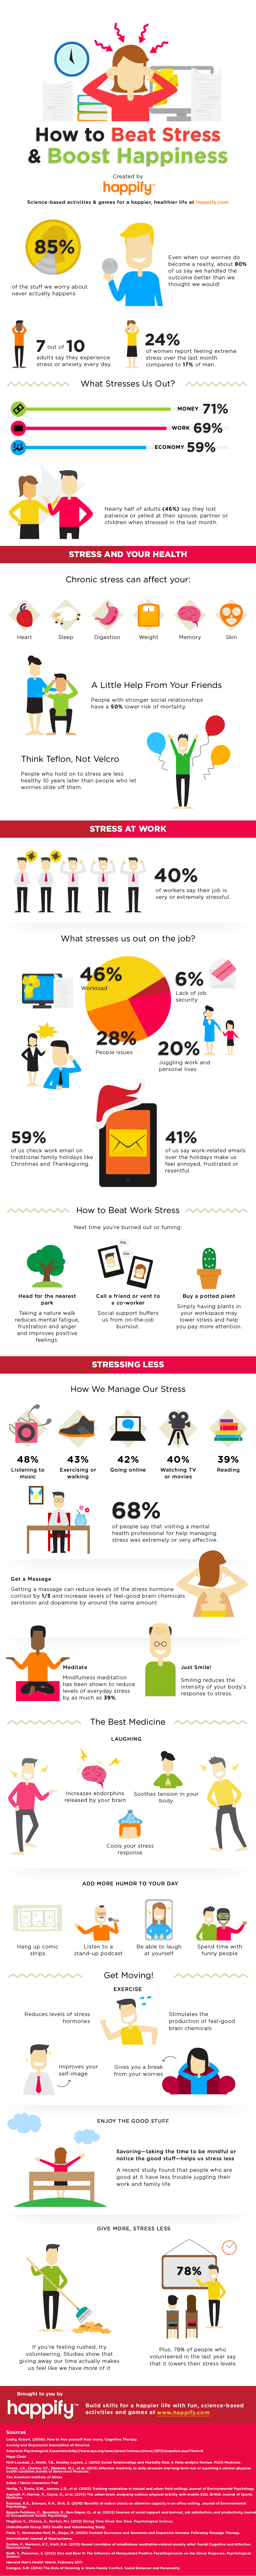 boost-happiness-beat-stress